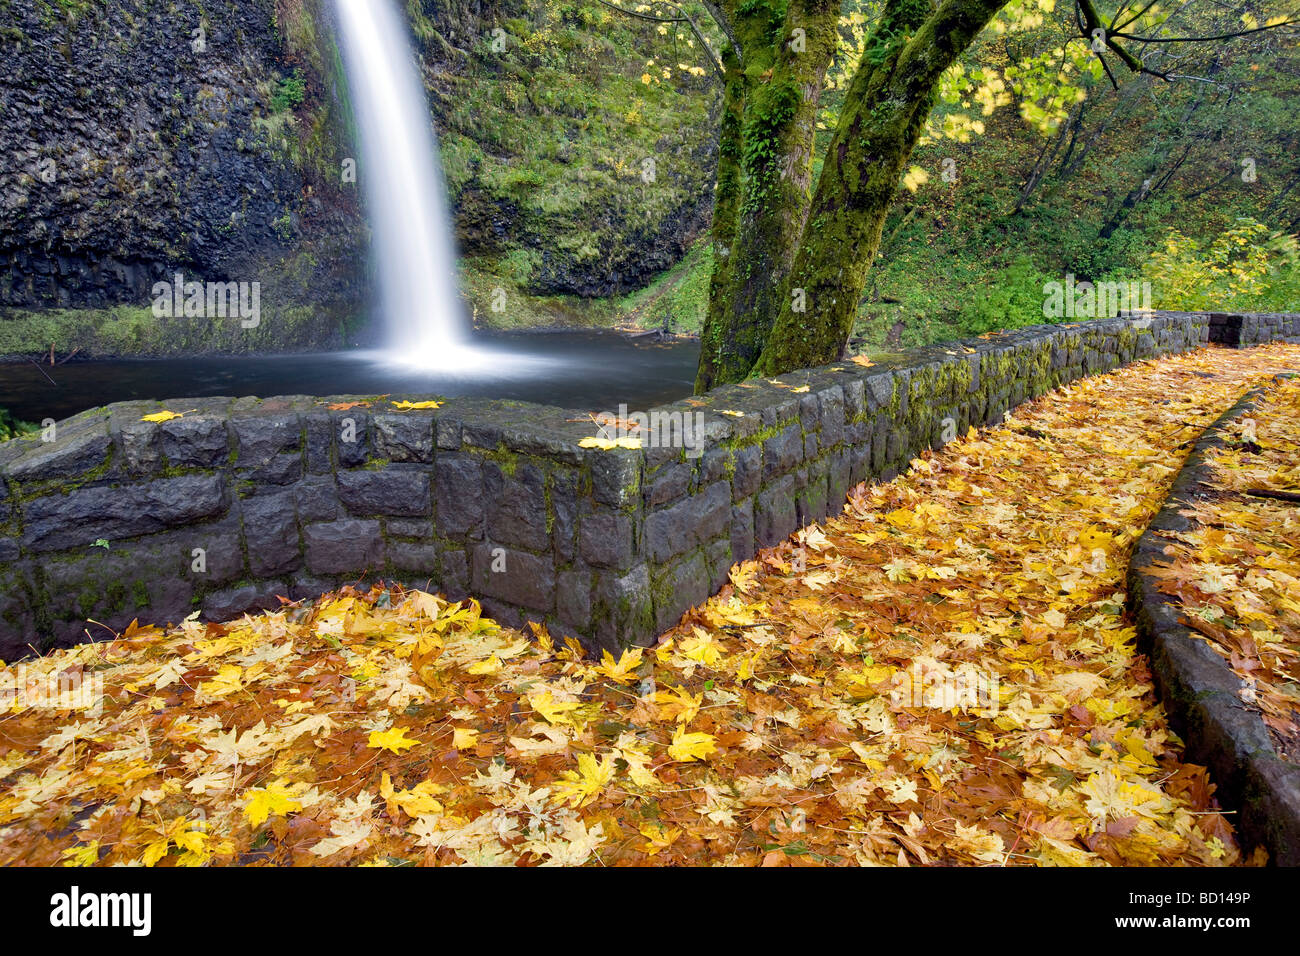 Horsetail falls and rock path with fall colored maple leaves Columbia River Gorge National Scenics Area Oregon - Stock Image